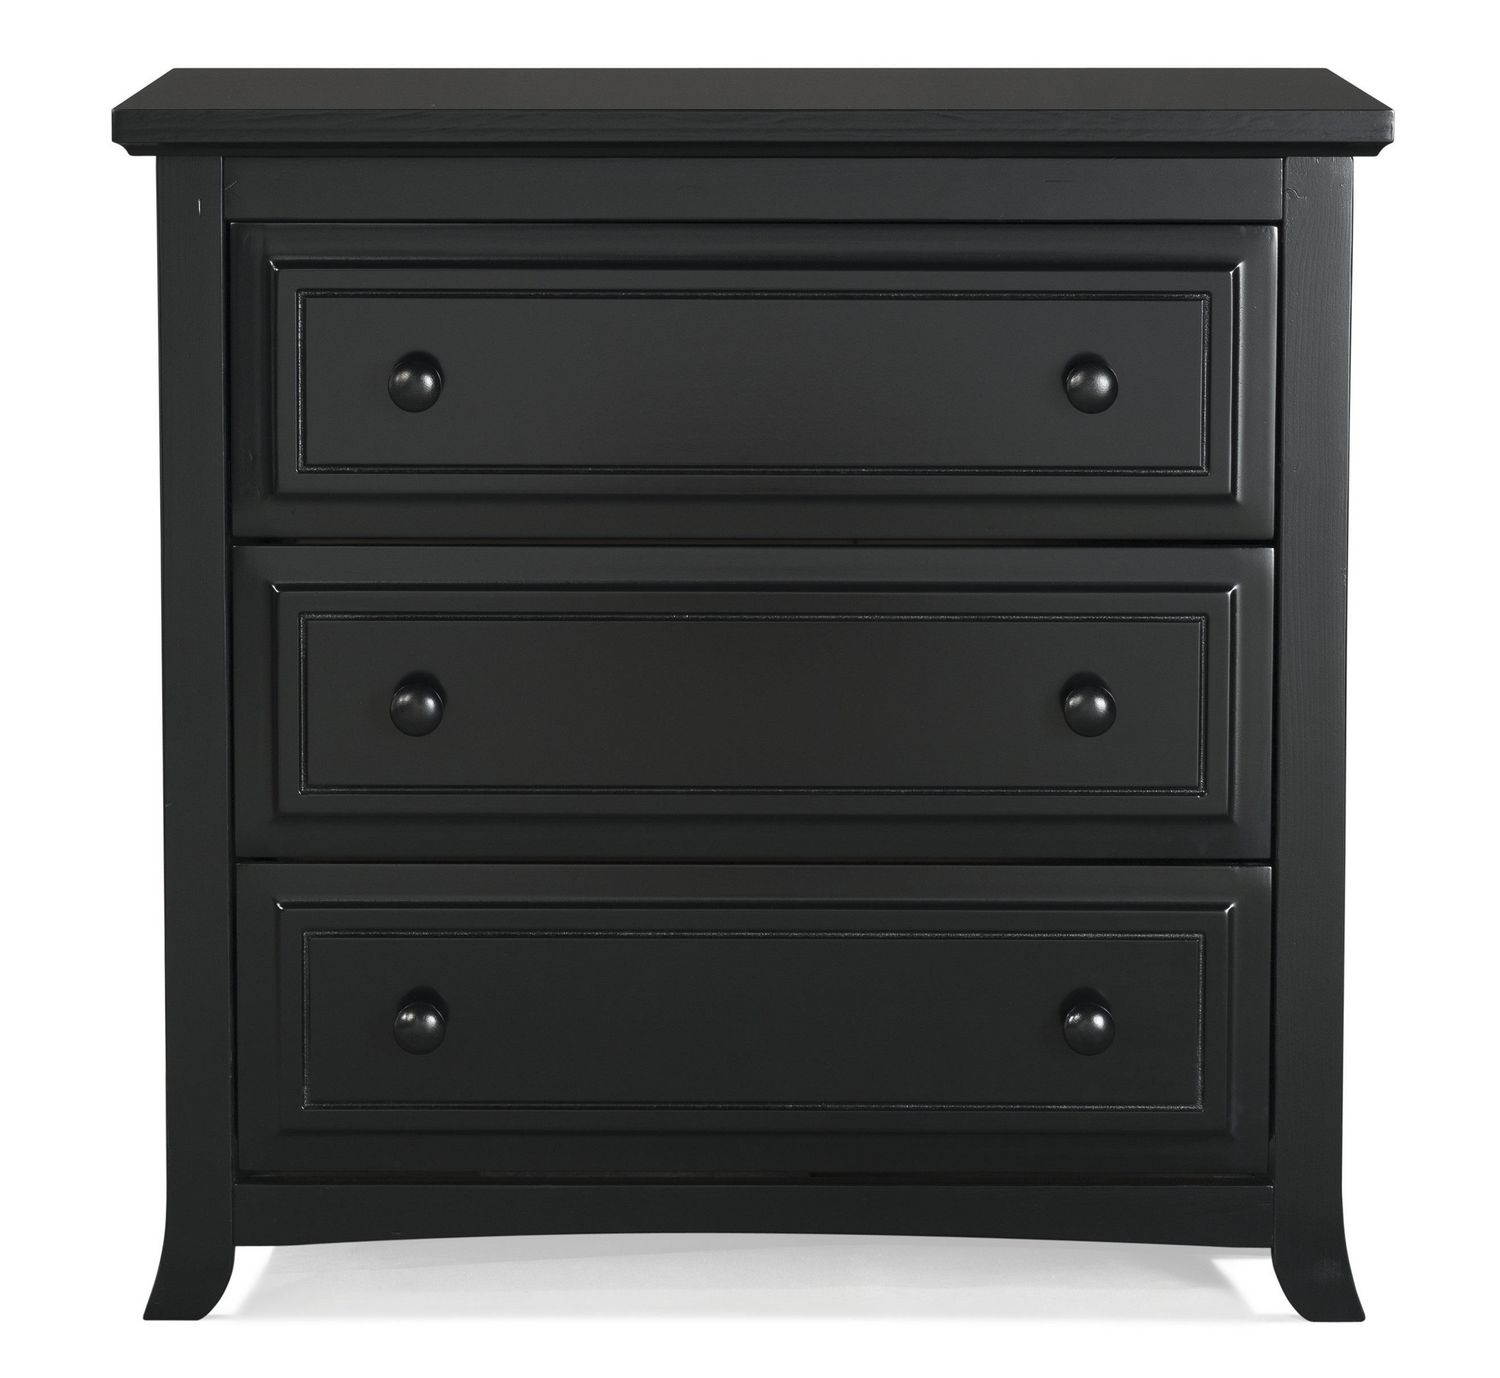 four drowers gray table changing dresser vega